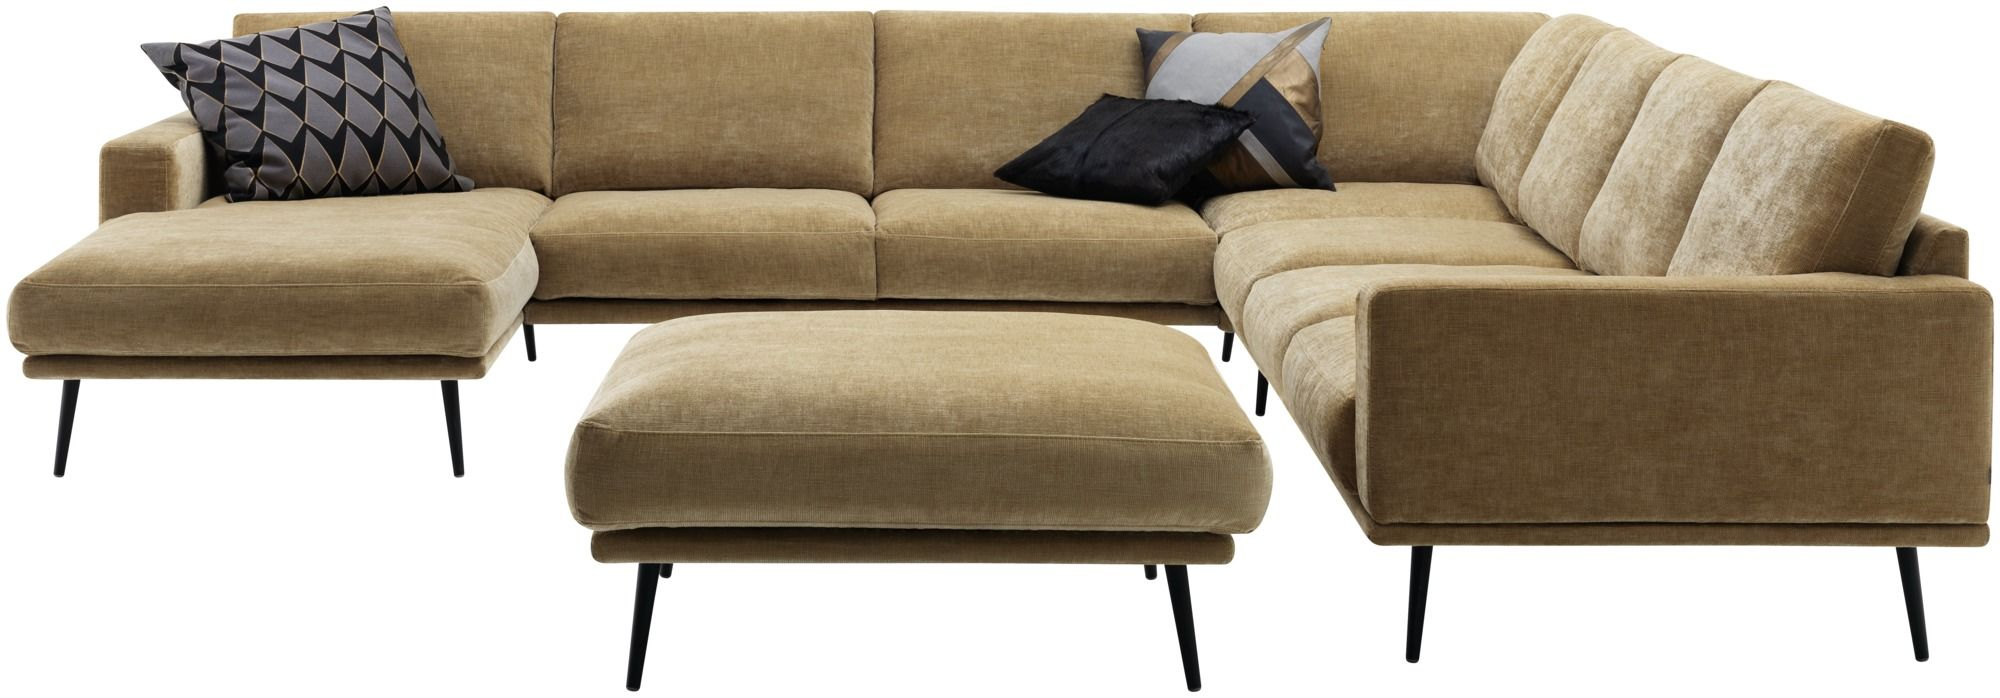 Modern Corner Sofas Quality From Boconcept Corner Sofa Sofa Store Furniture